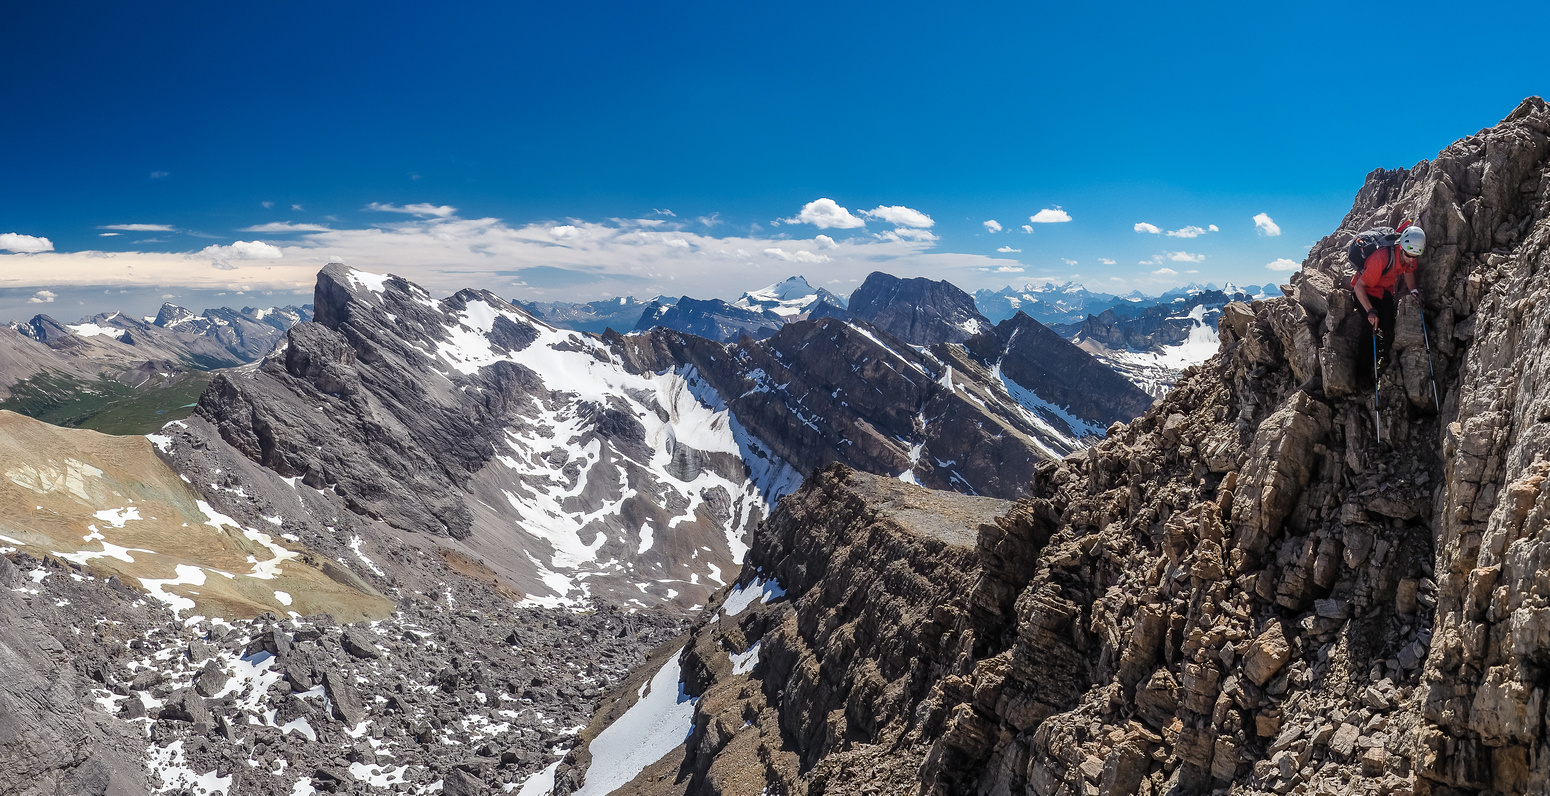 Another exposed move along the east face traverse. At least the weather is holding and the views are still great.